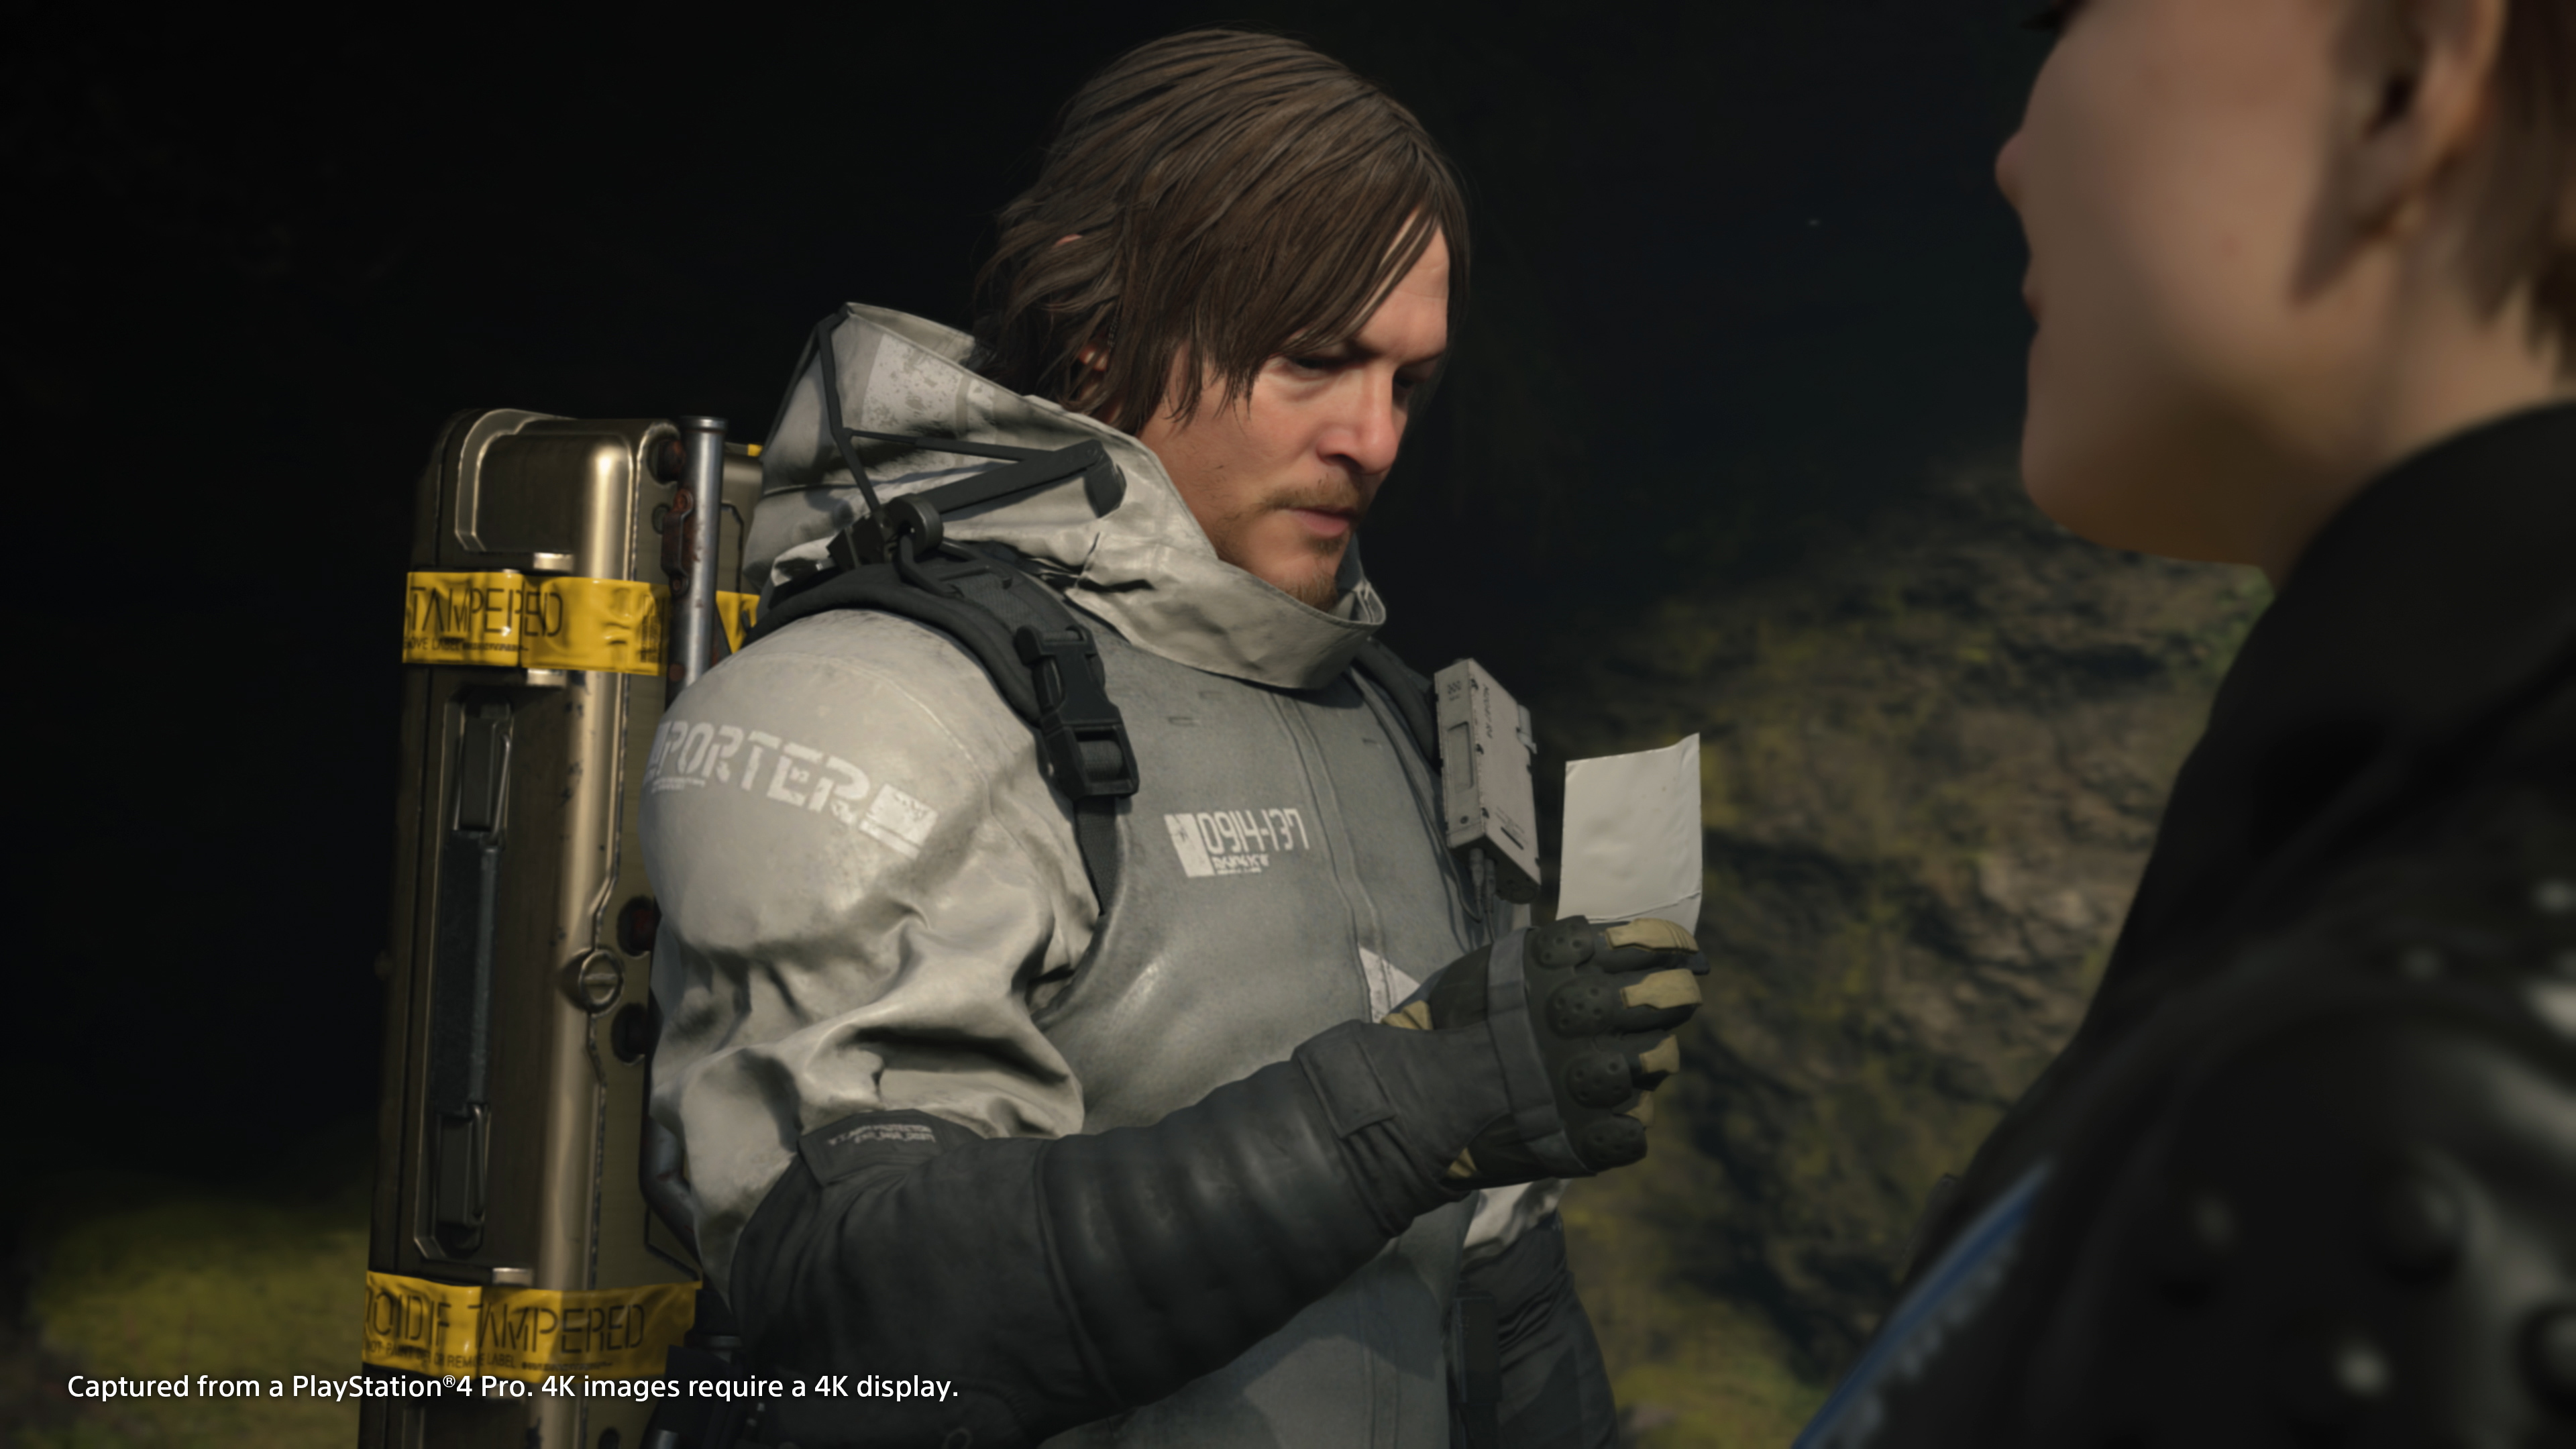 Death Stranding Ending Explained What The Story Is About And What It Means Gamesradar